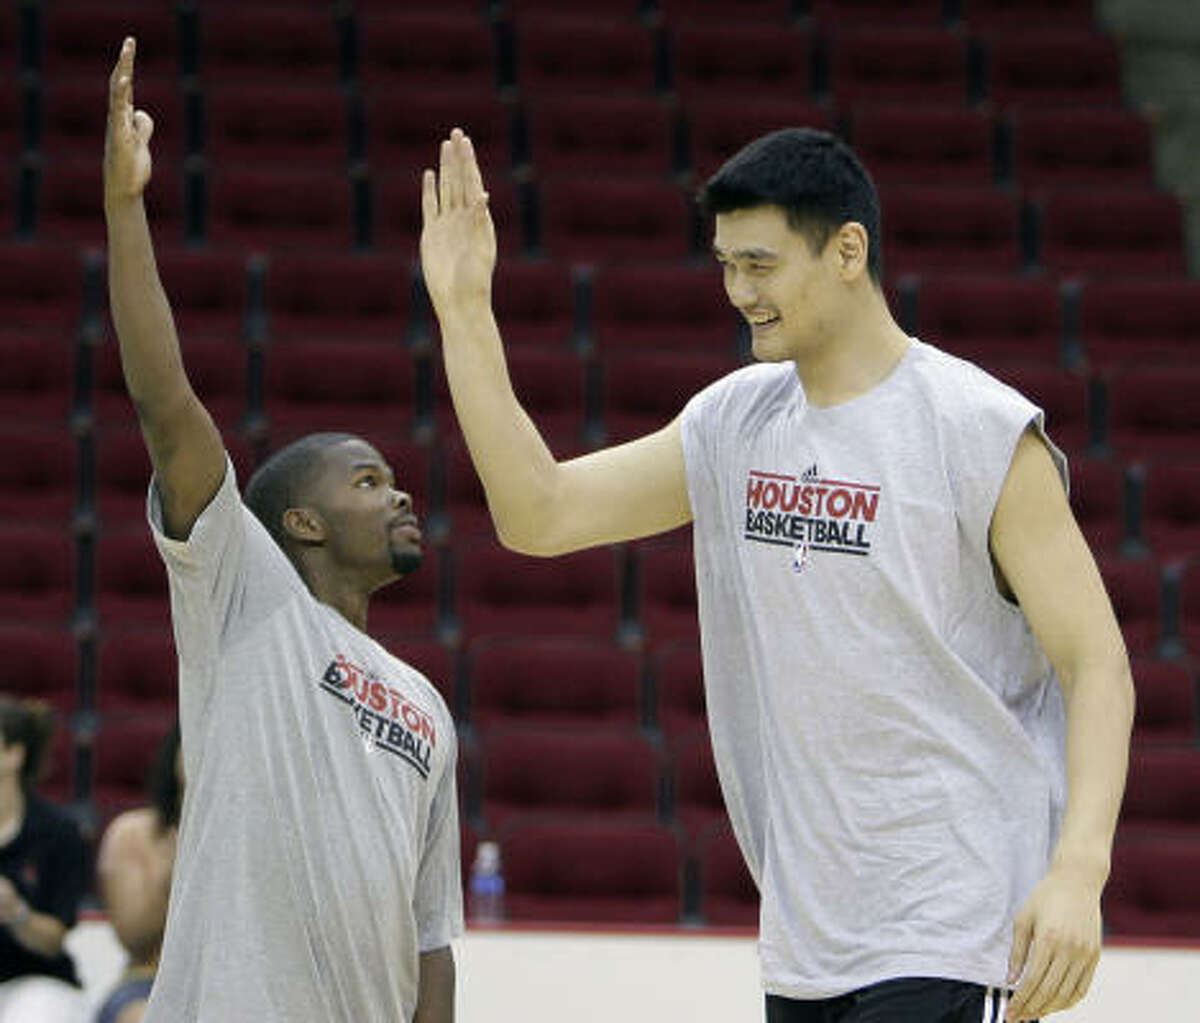 Rockets guard Aaron Brooks, left, high fives Yao Ming.